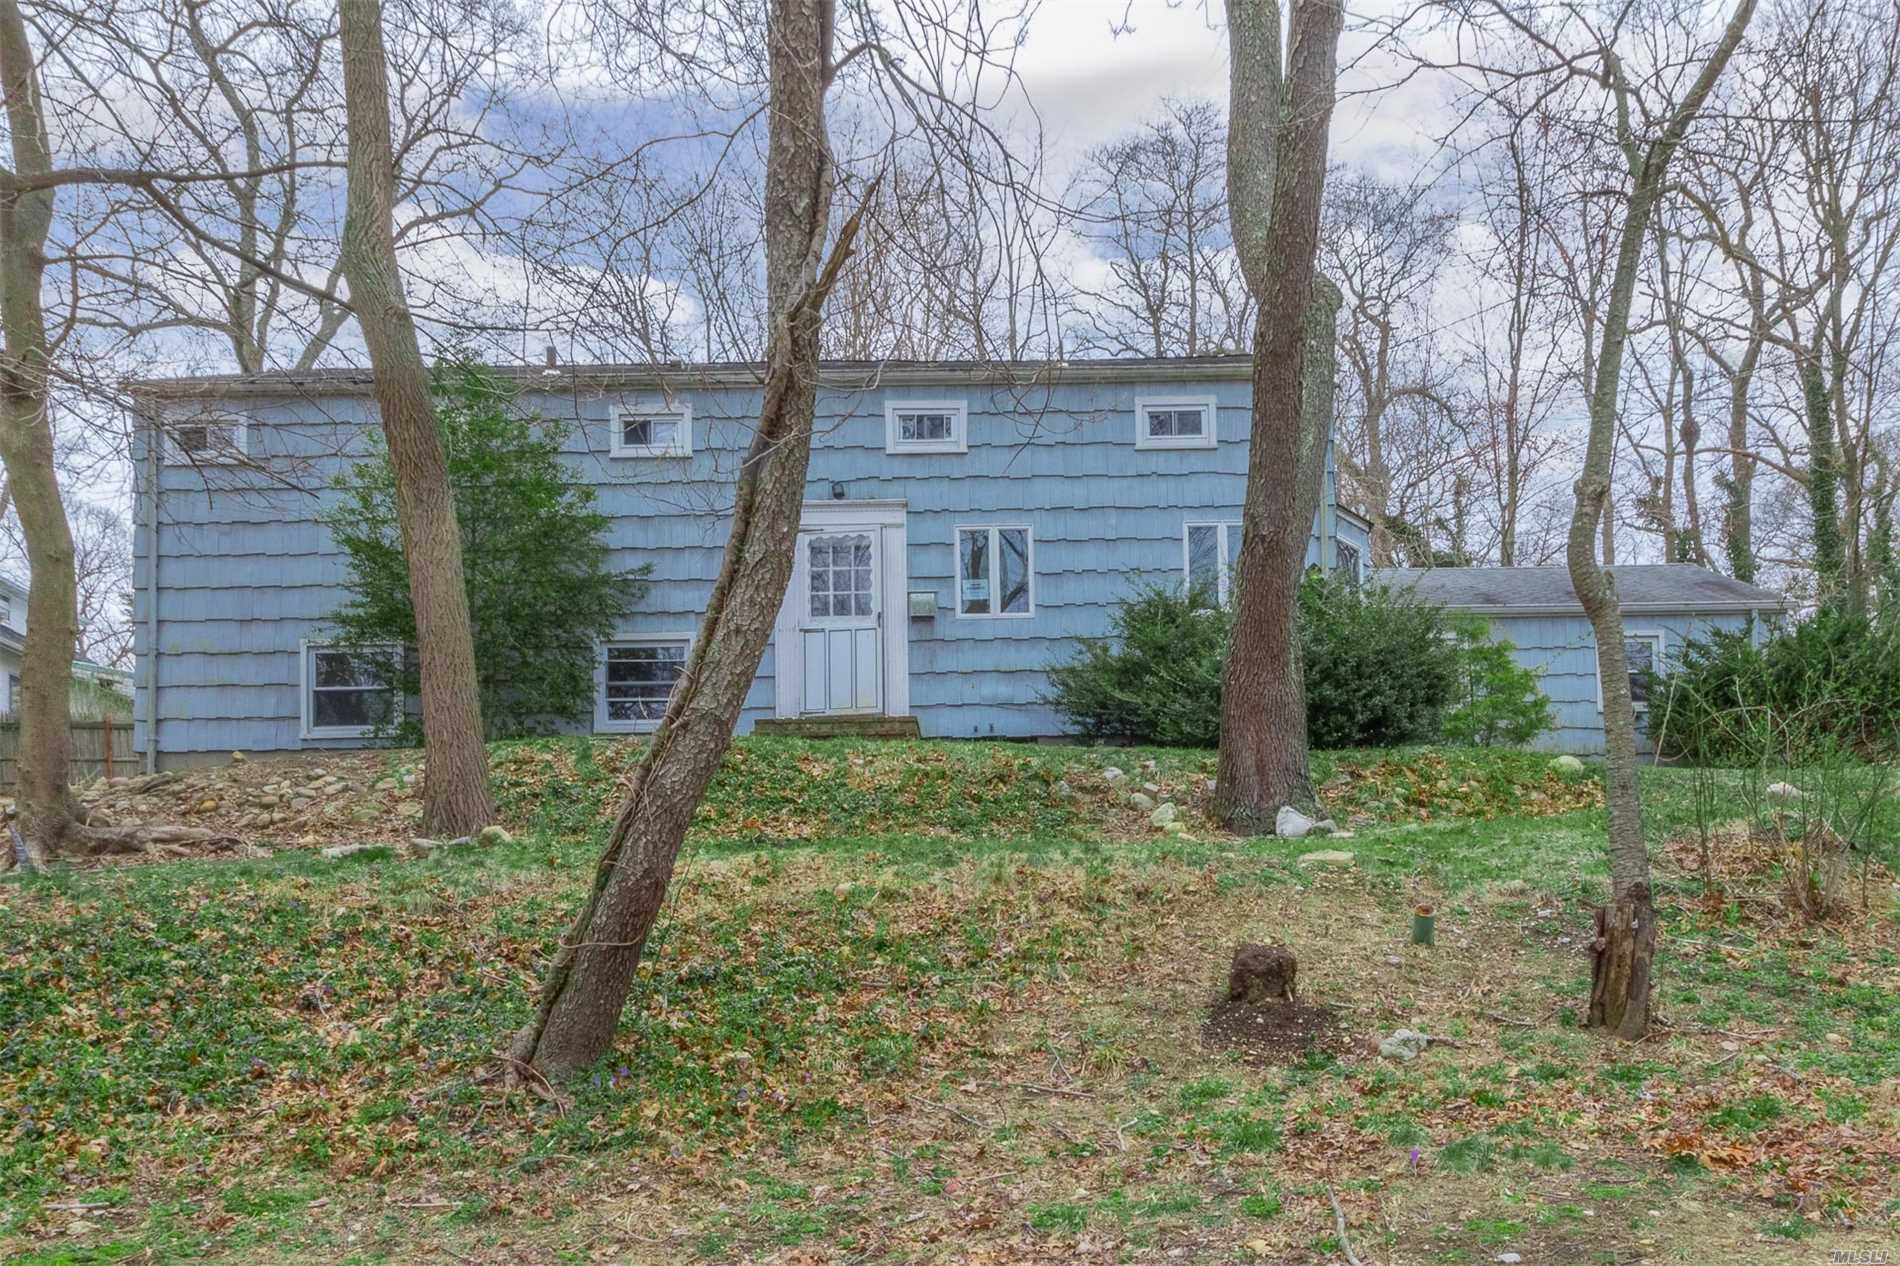 Large Split Level with 2 Car Attached Garage. Perfect for Large Family and Entertaining. Living Room Offers Wood Burning Fireplace and Hardwood Floors. Great Enclosed Patio. Large Bedrooms. Master Bedroom is Tremendous with Bedroom size Walk in Closet. Close to Sunken Meadow State Park.